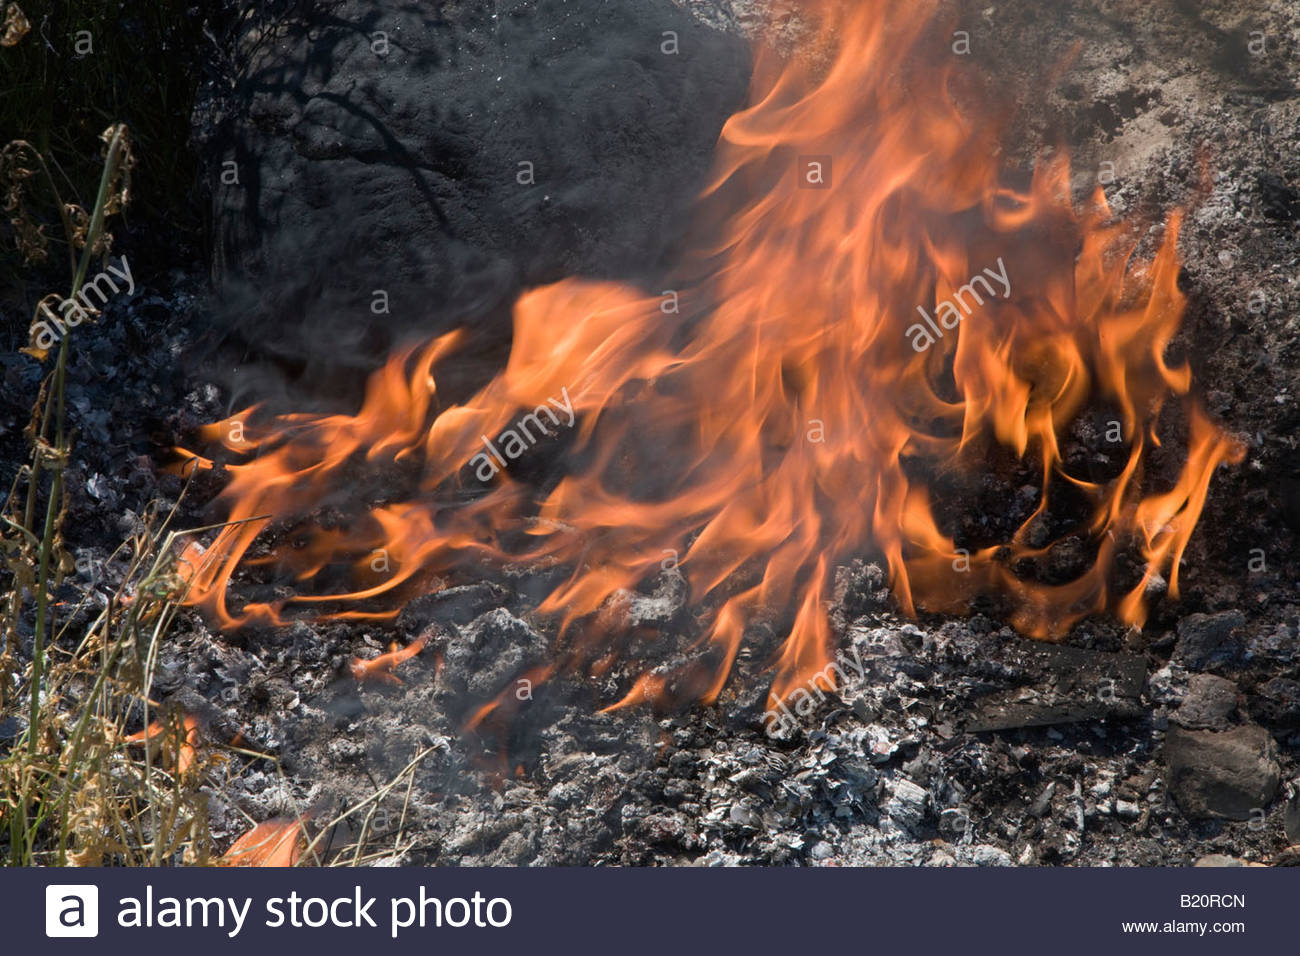 Close up of flames Photo Stock